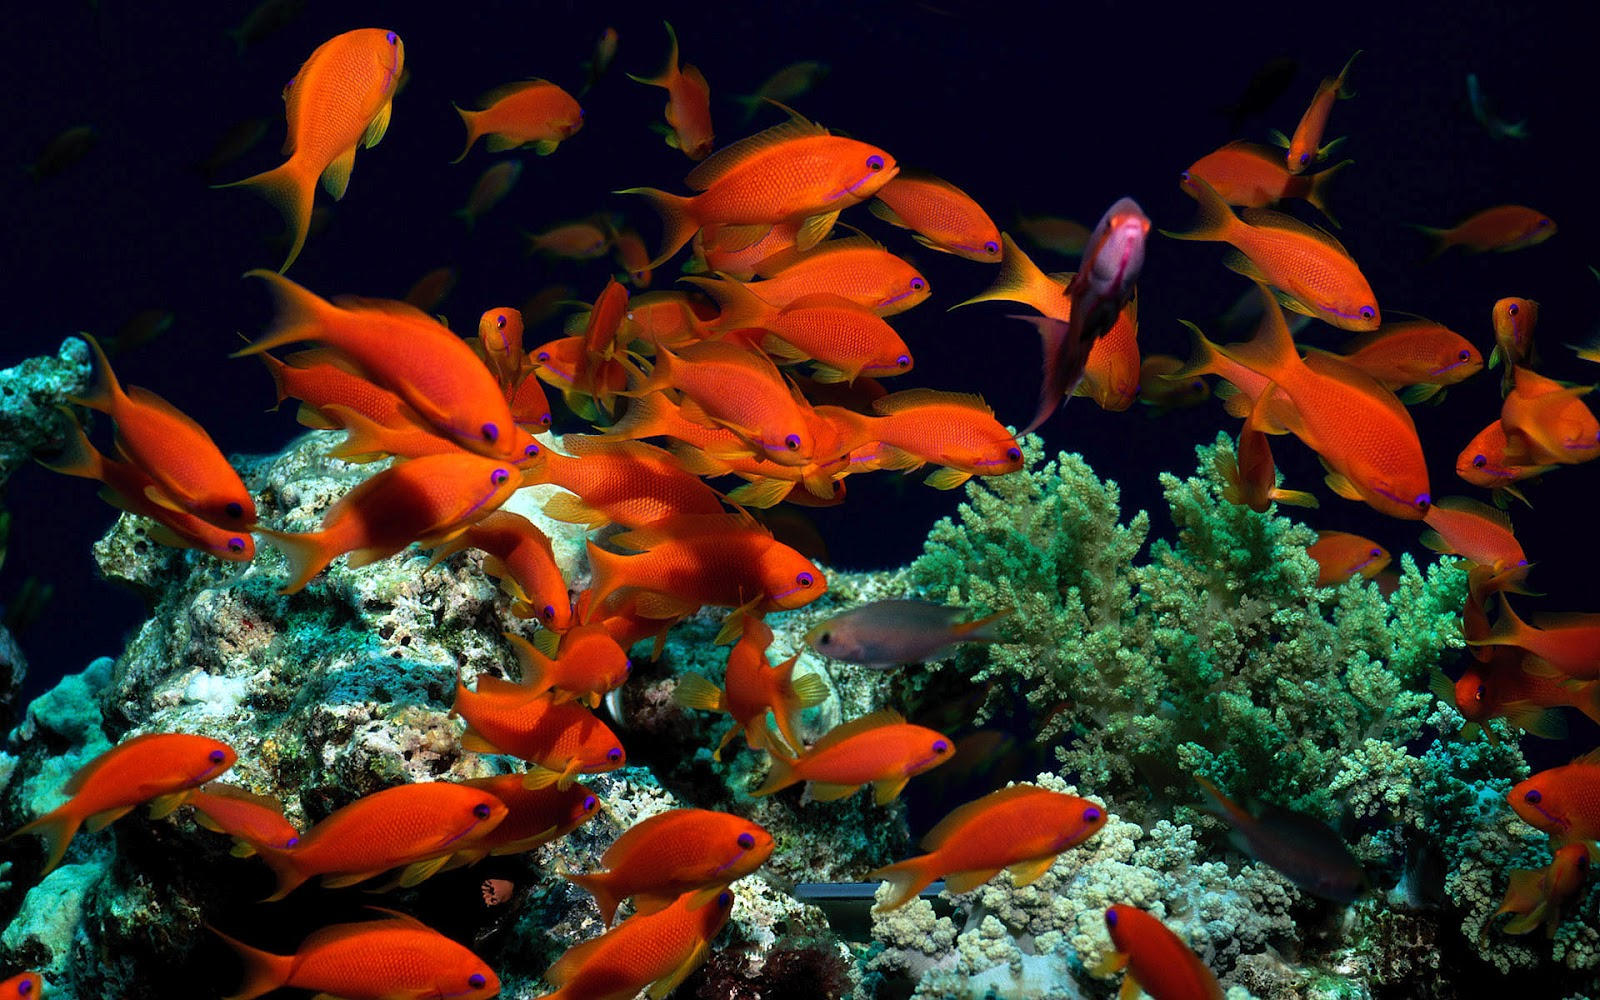 Simple   Wallpaper Horse Colorful - Ocean-life-wallpapers-marine-life-on-the-seabed-like-fish-plants-animals-hd-wallpaper-07  Photograph_756736.jpg